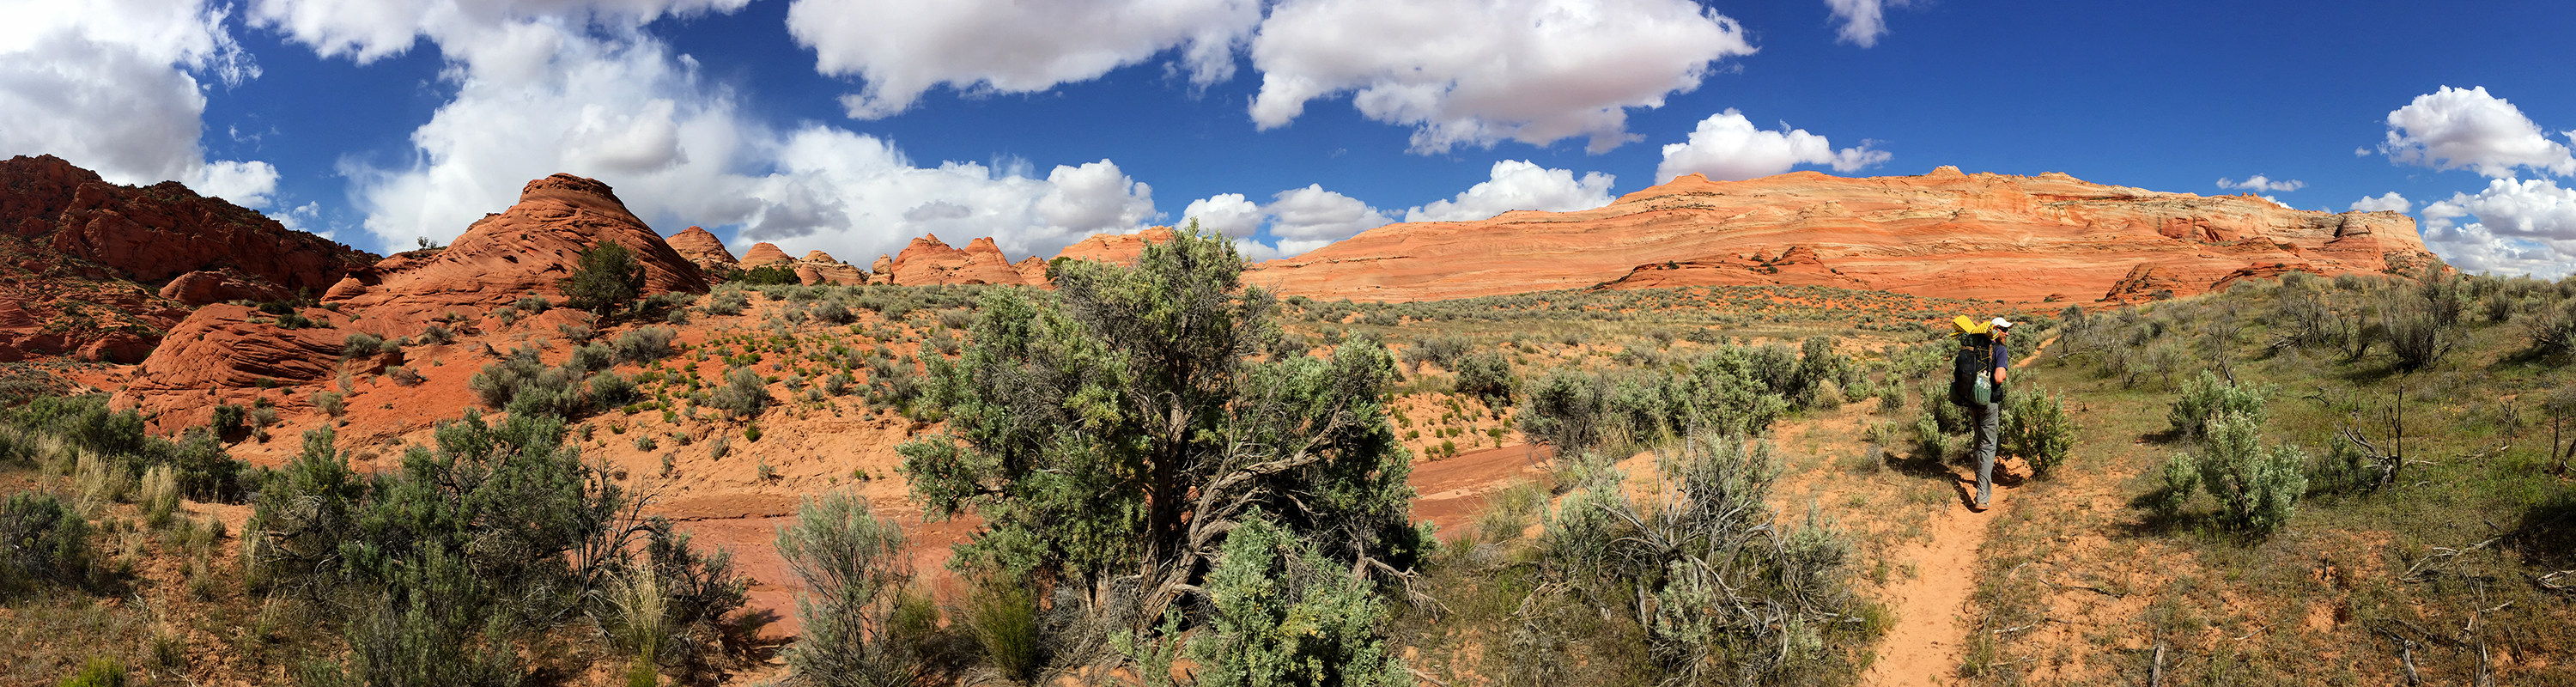 coyote buttes wire pass